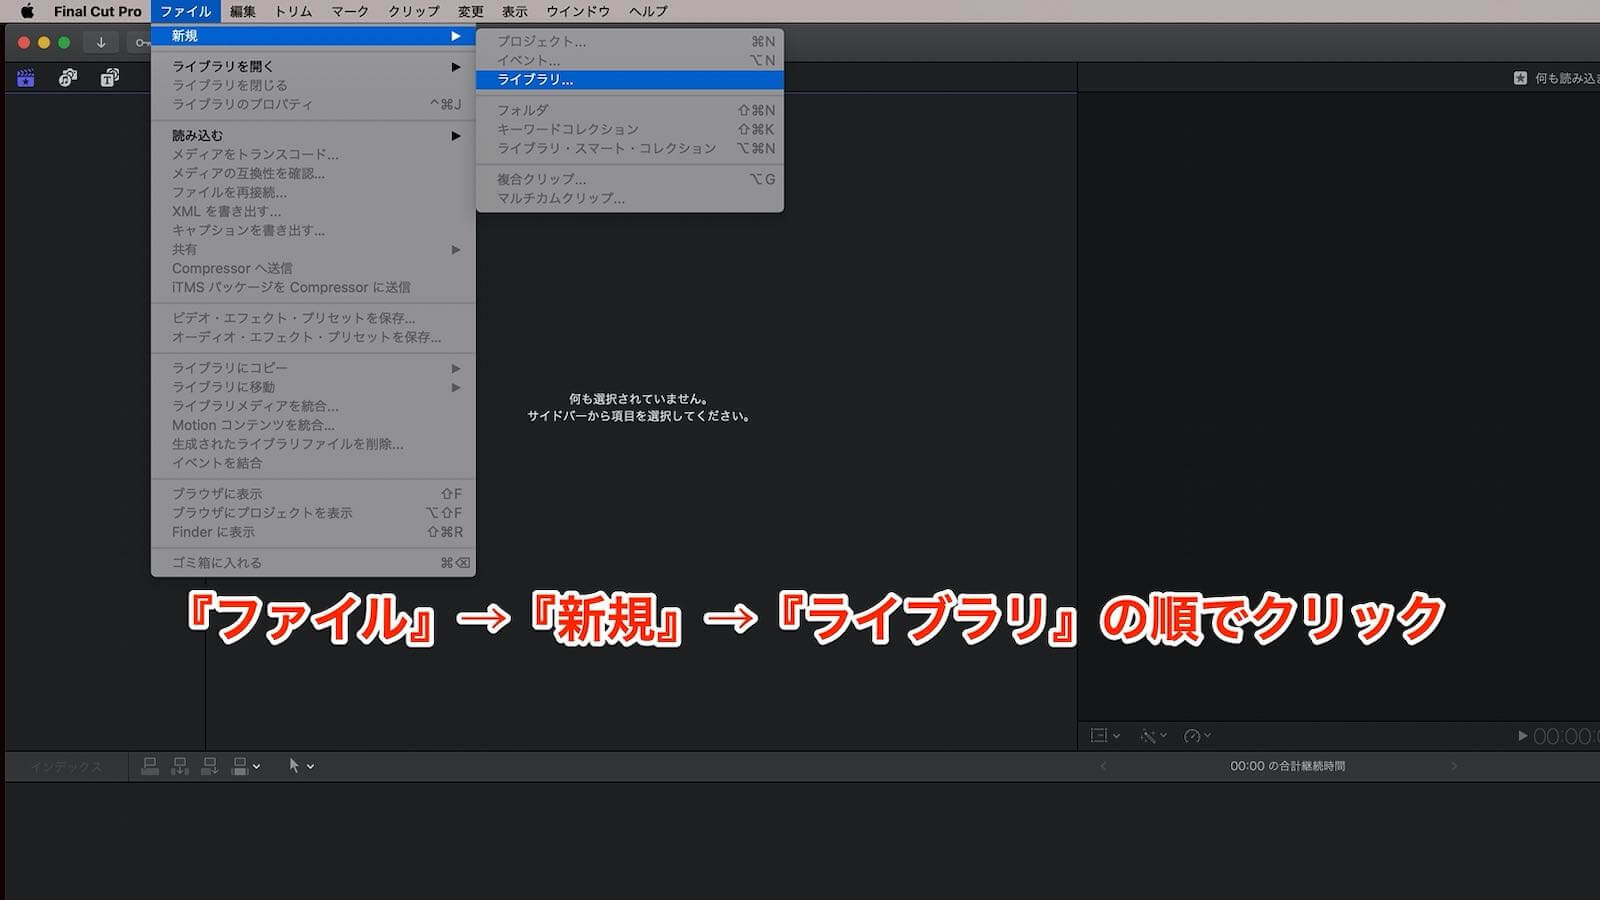 0232 Explain the basic usage of Final Cut Pro 14